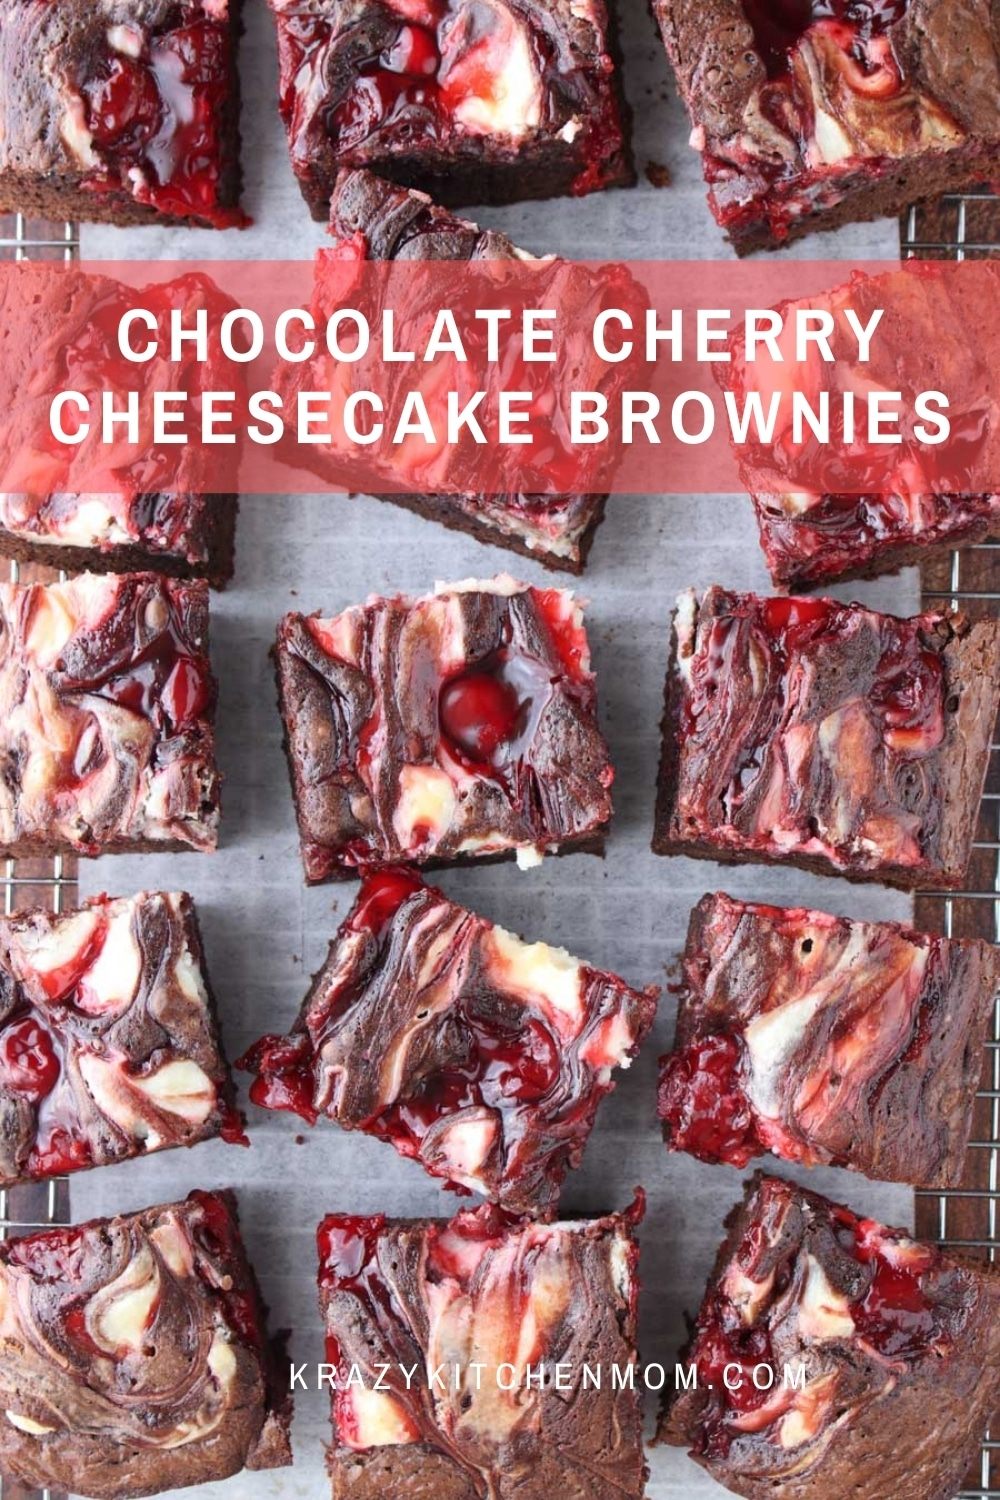 Boxed brownie mix just got a whole lot yummier! These brownies are rich, chewy, and filled with bites of cheesecake and cherries.  via @krazykitchenmom